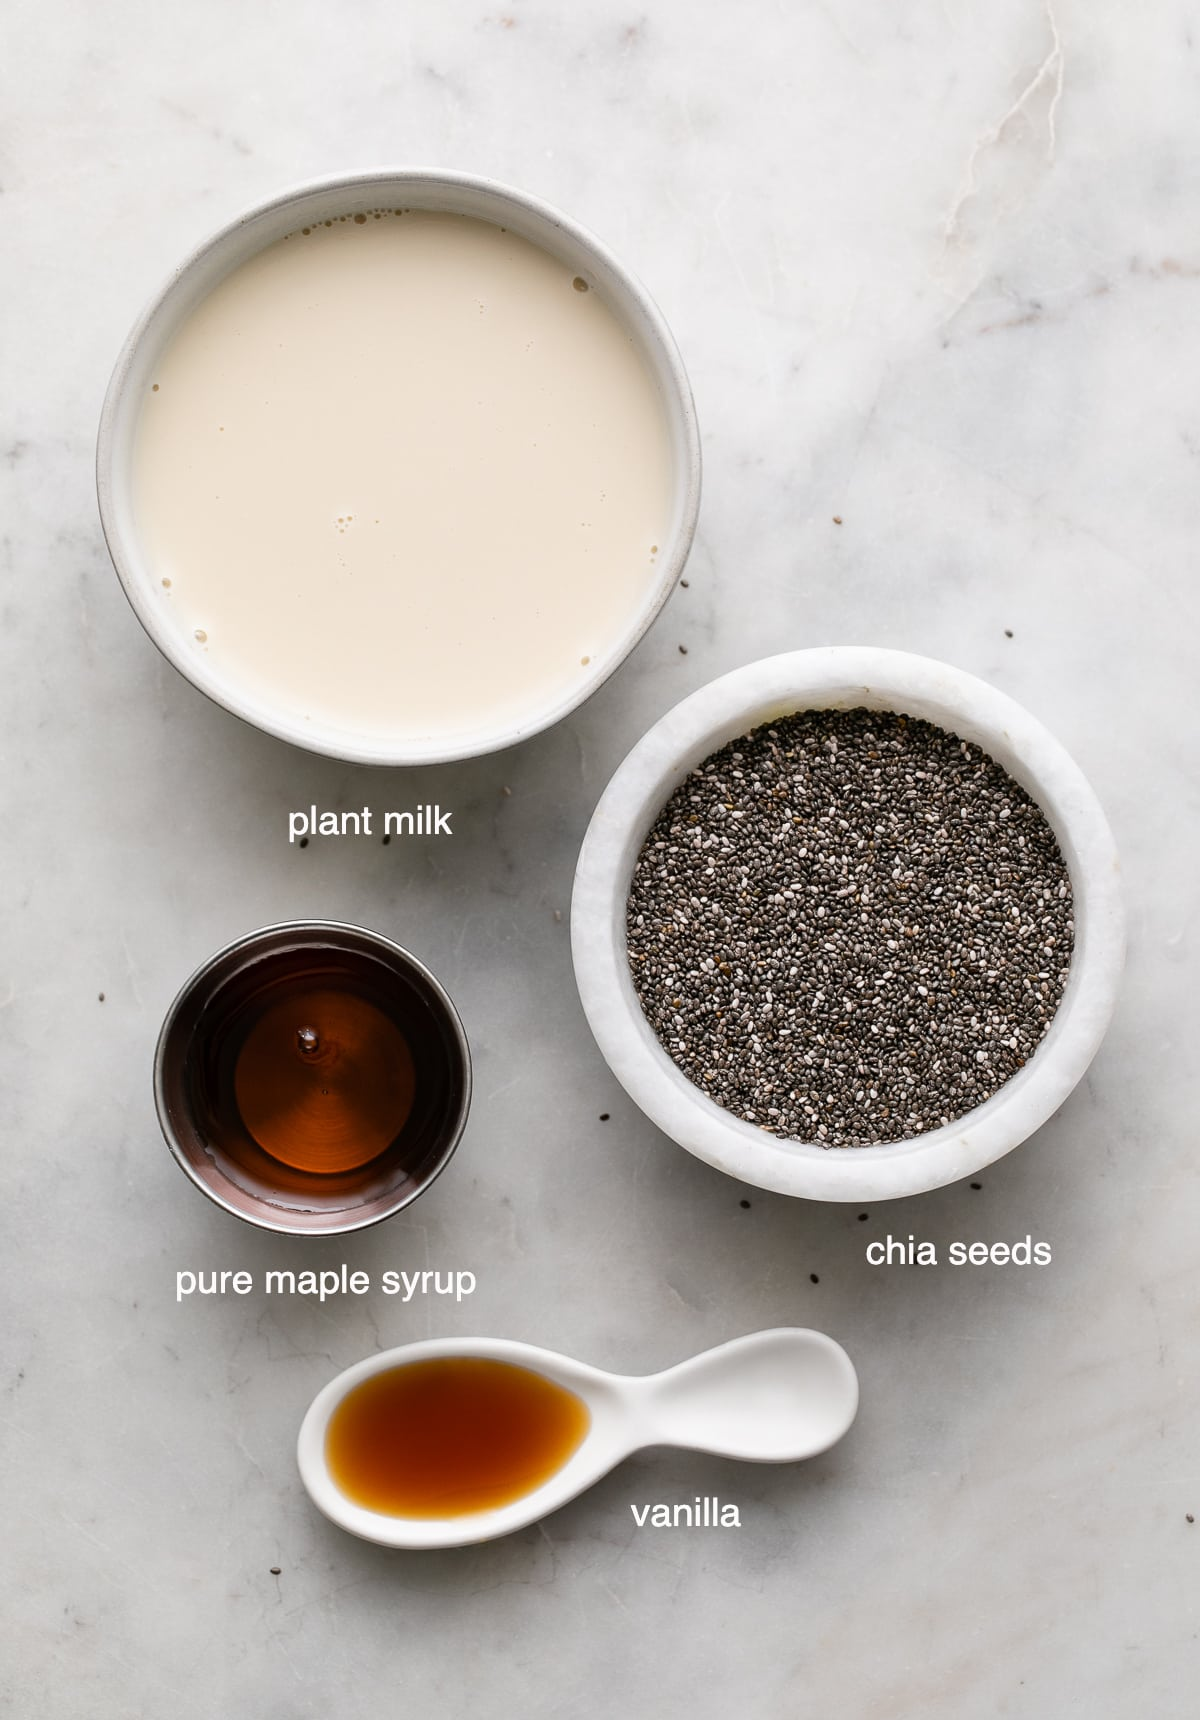 top down view of ingredients used to make healthy vanilla chia pudding recipe.